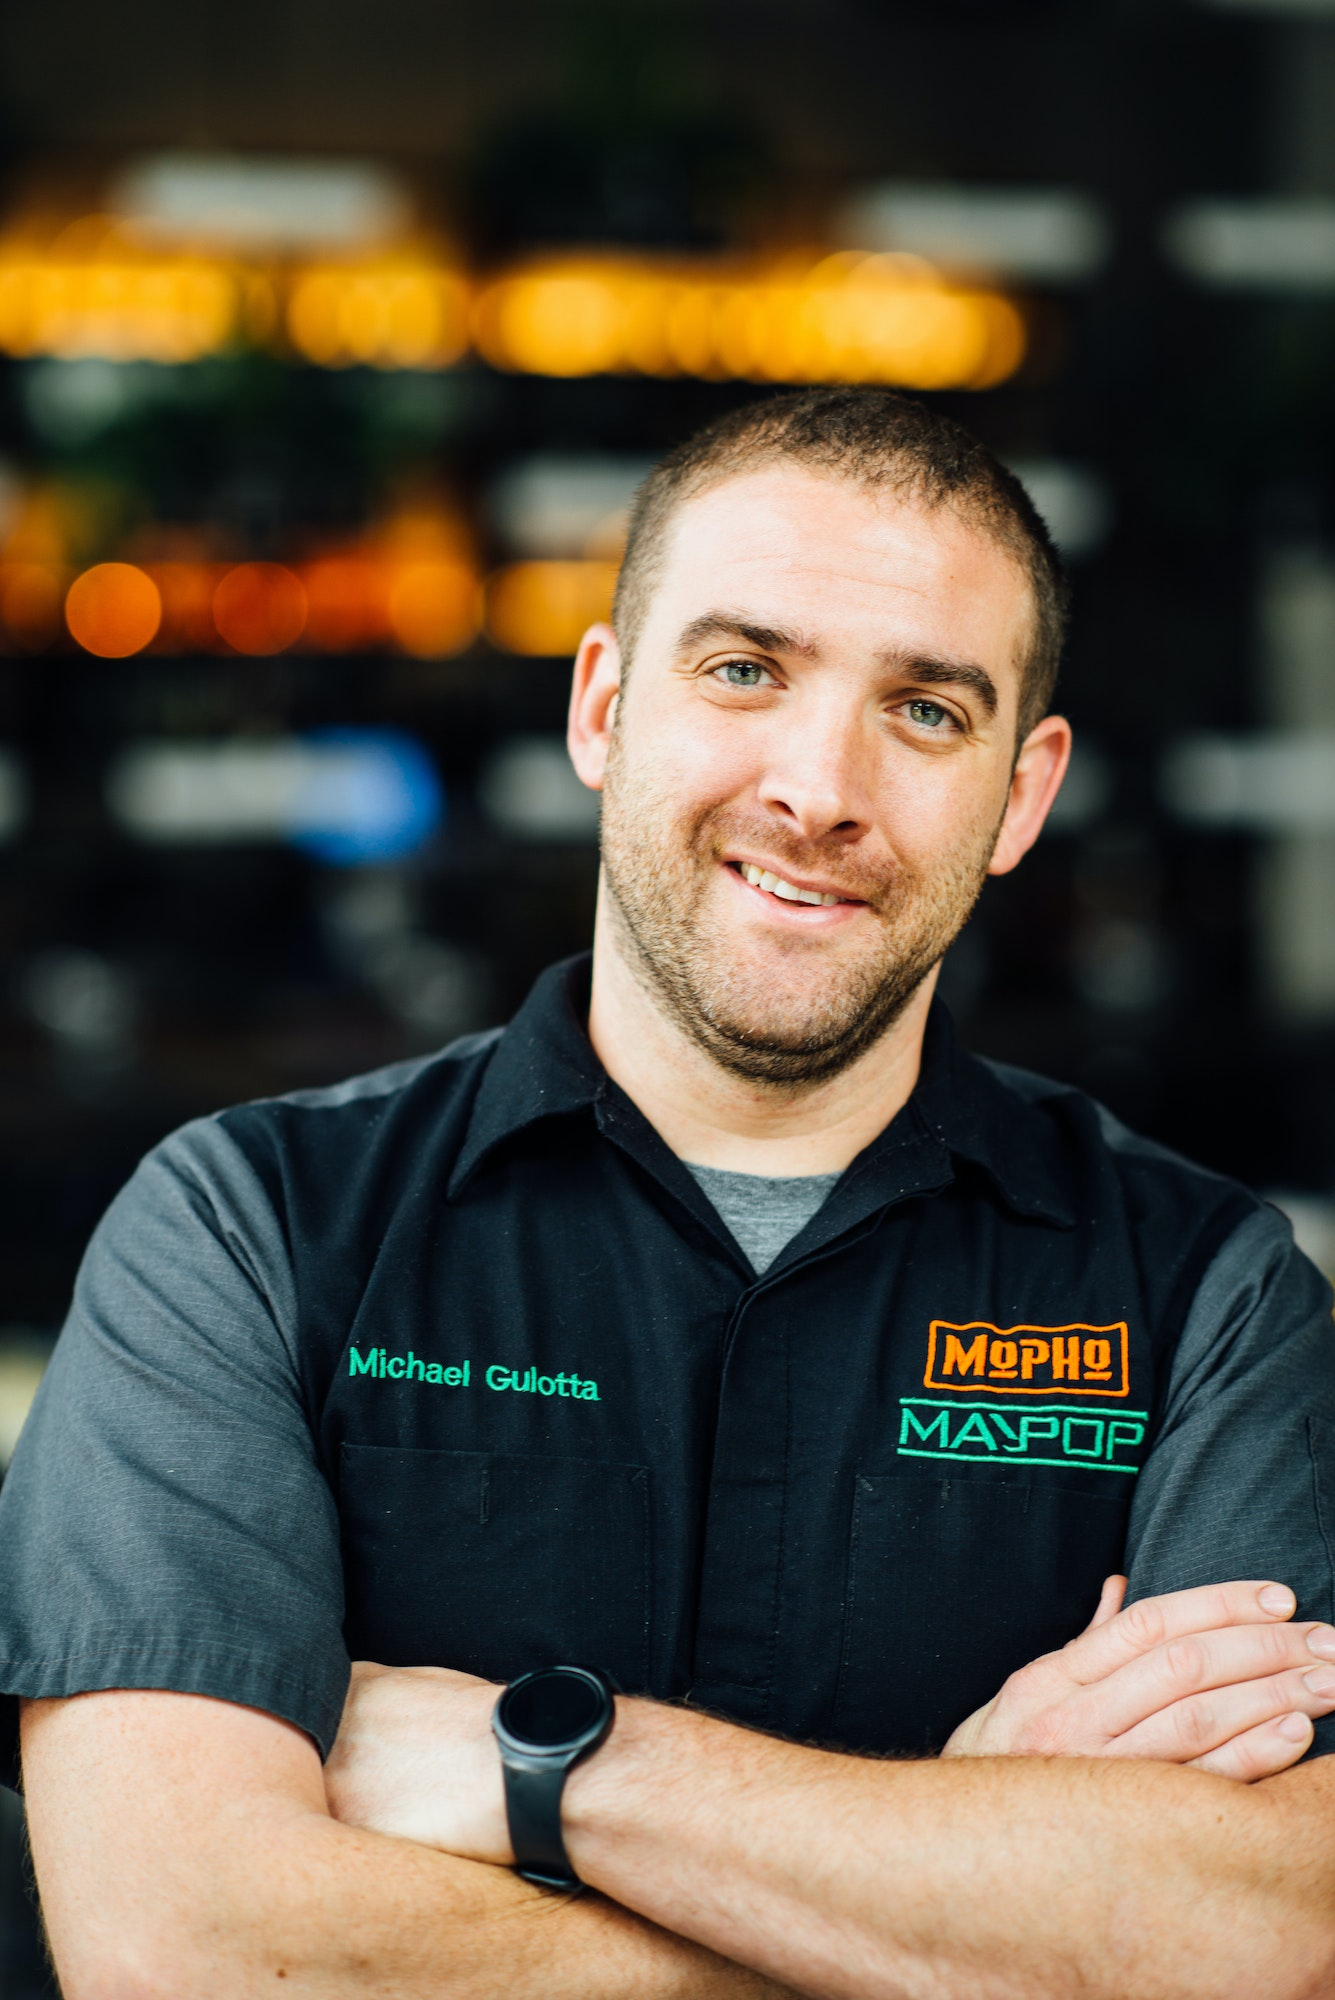 Michael Gulotta of MoPho and Maypop New Orleans Restaurants